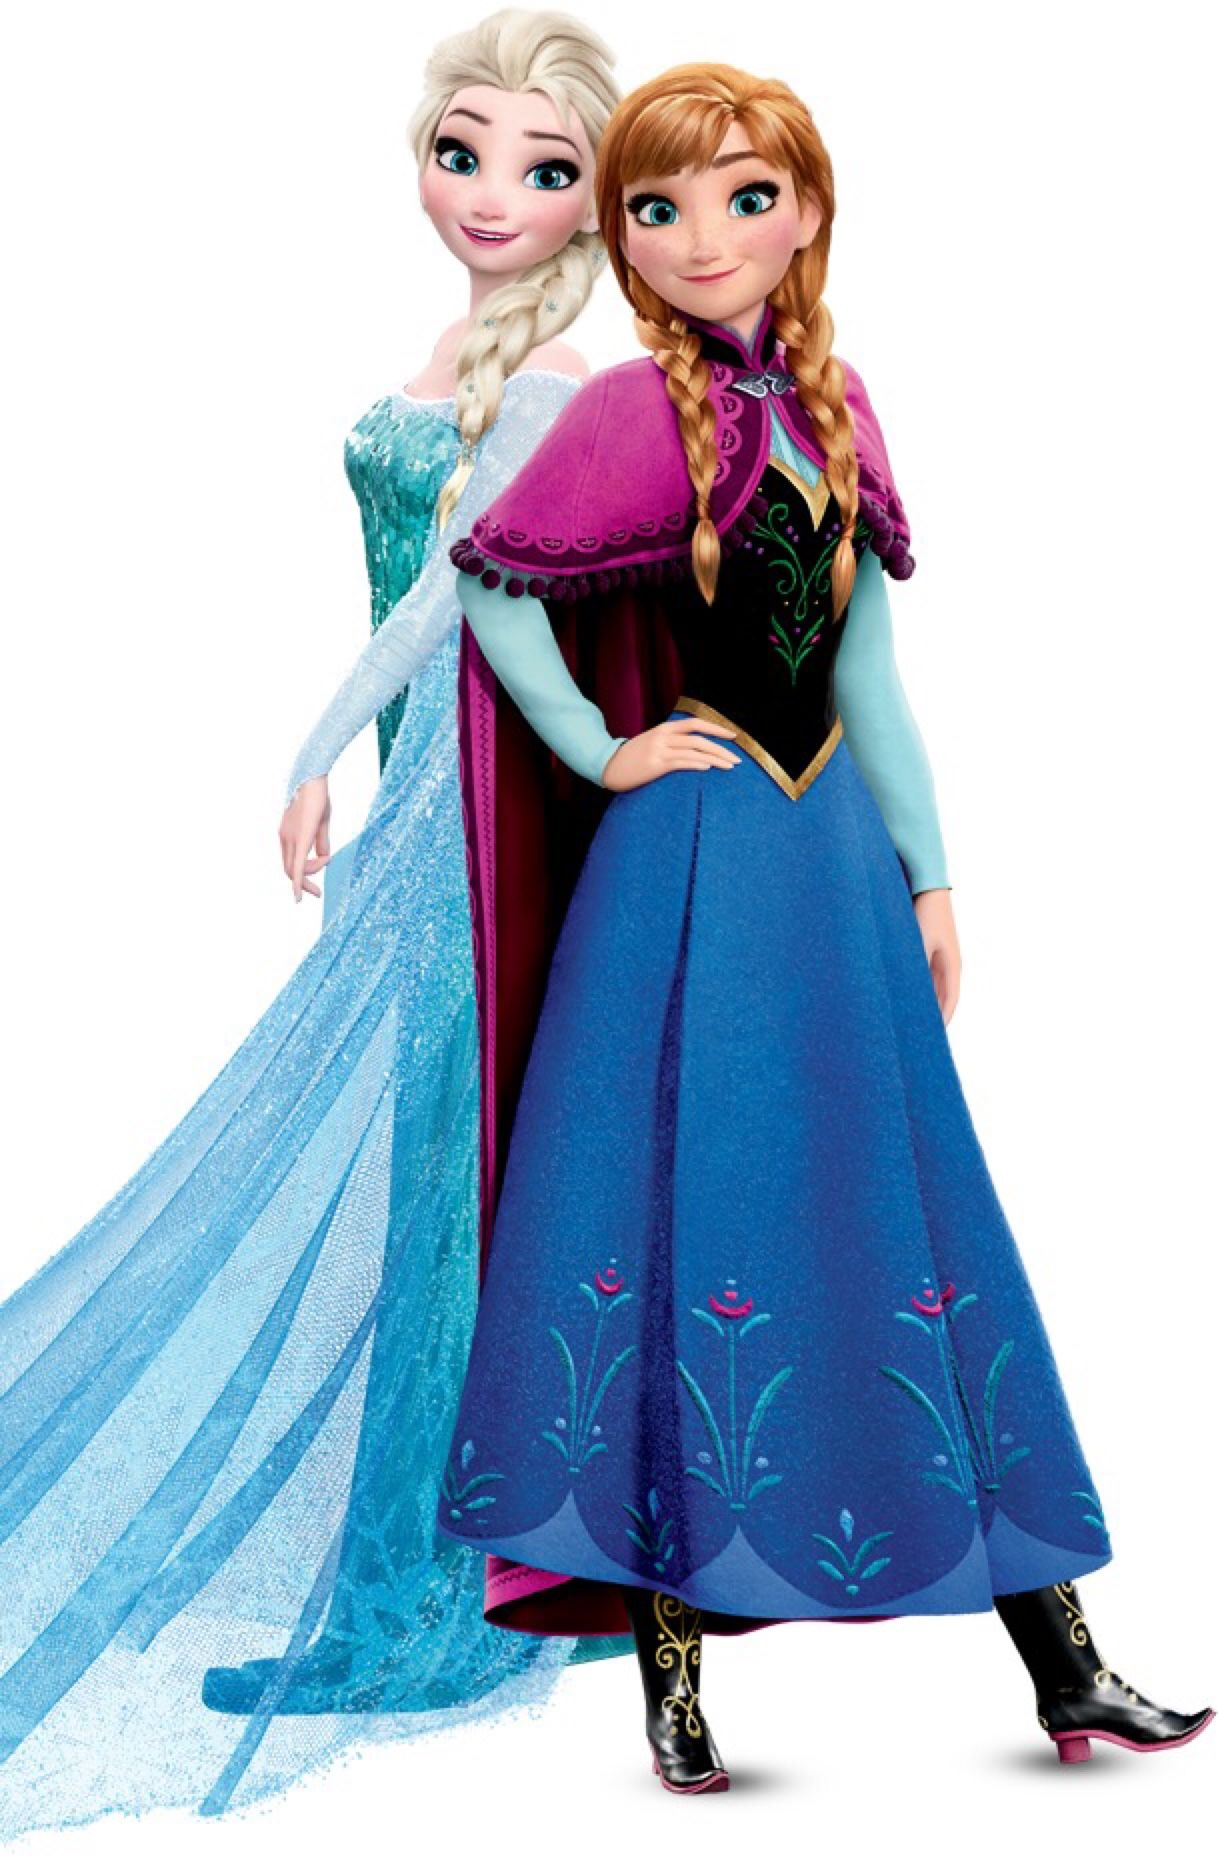 Disney Princesses Including Anna And Elsa